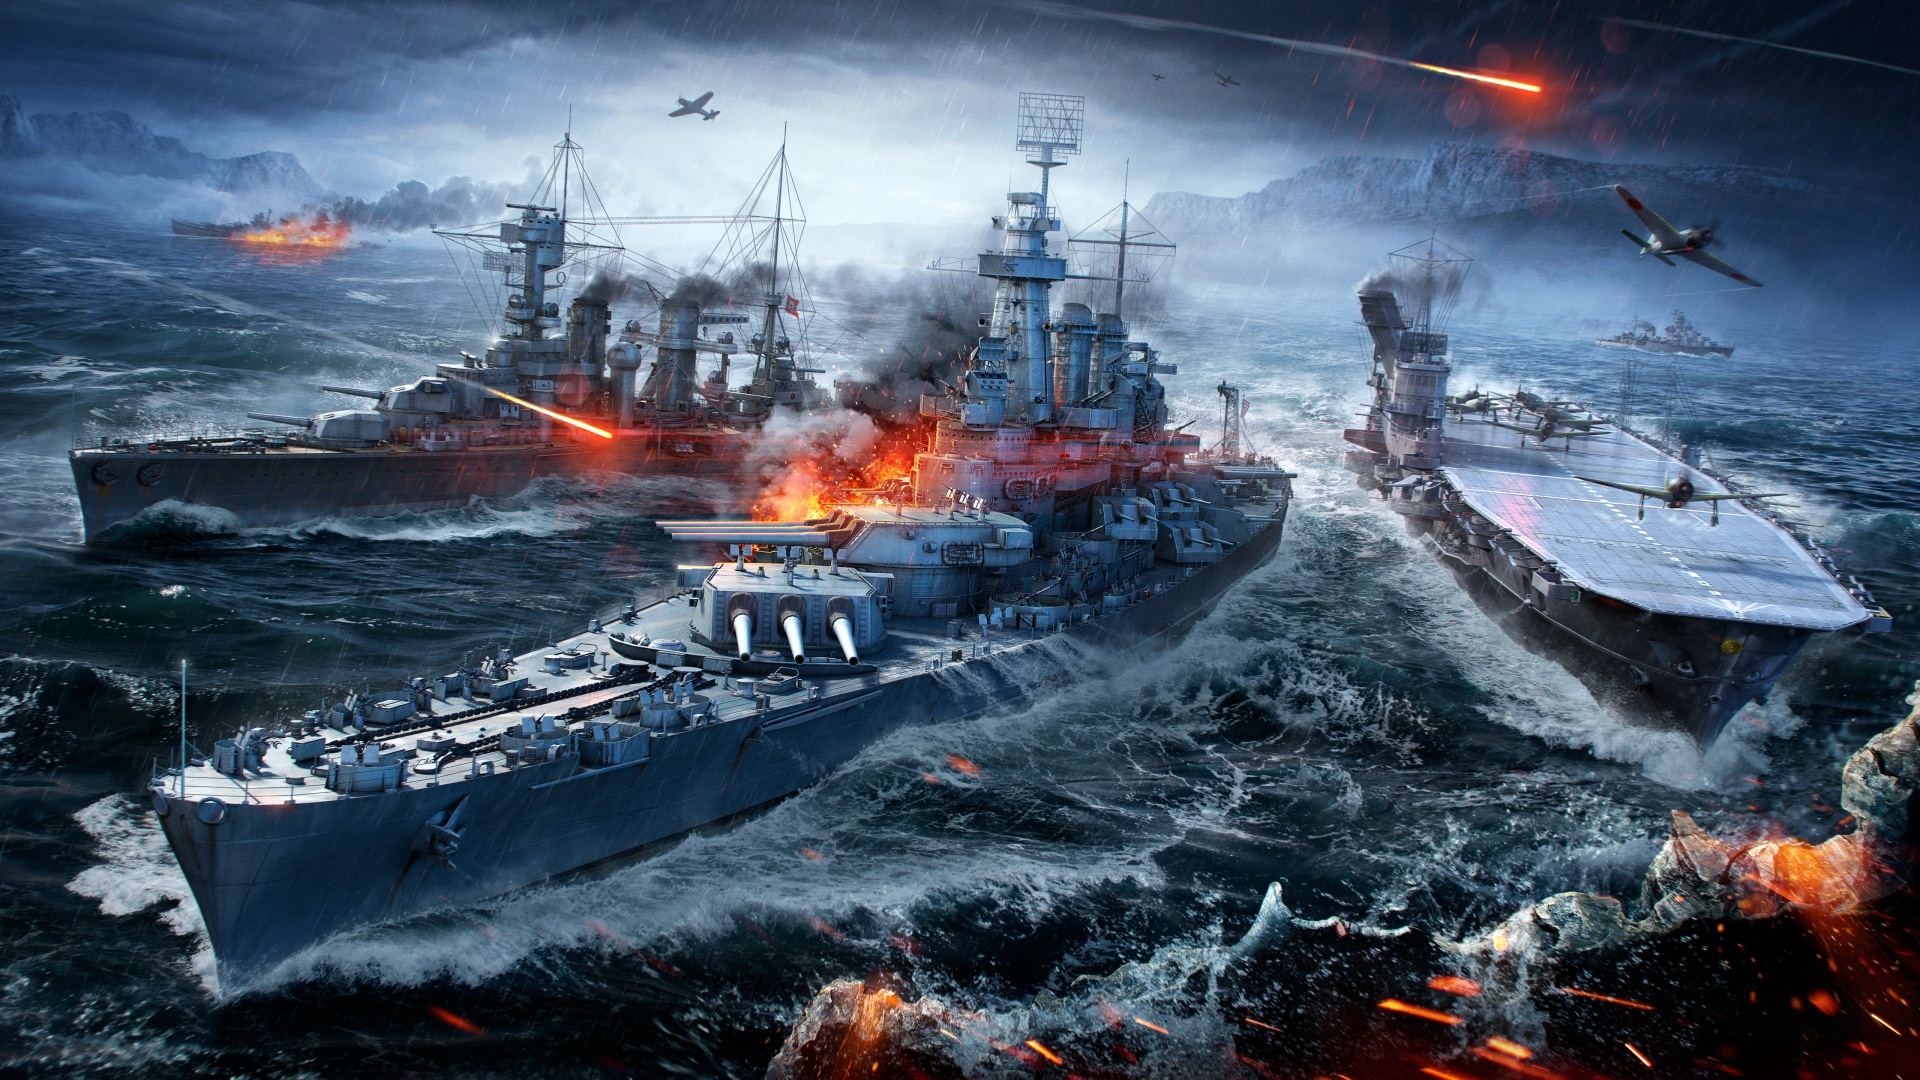 World-of-Warships-Naval-Sea-Battle-K-1920x1080-See-more-on-Classy-Bro-wallpaper-wp38012241